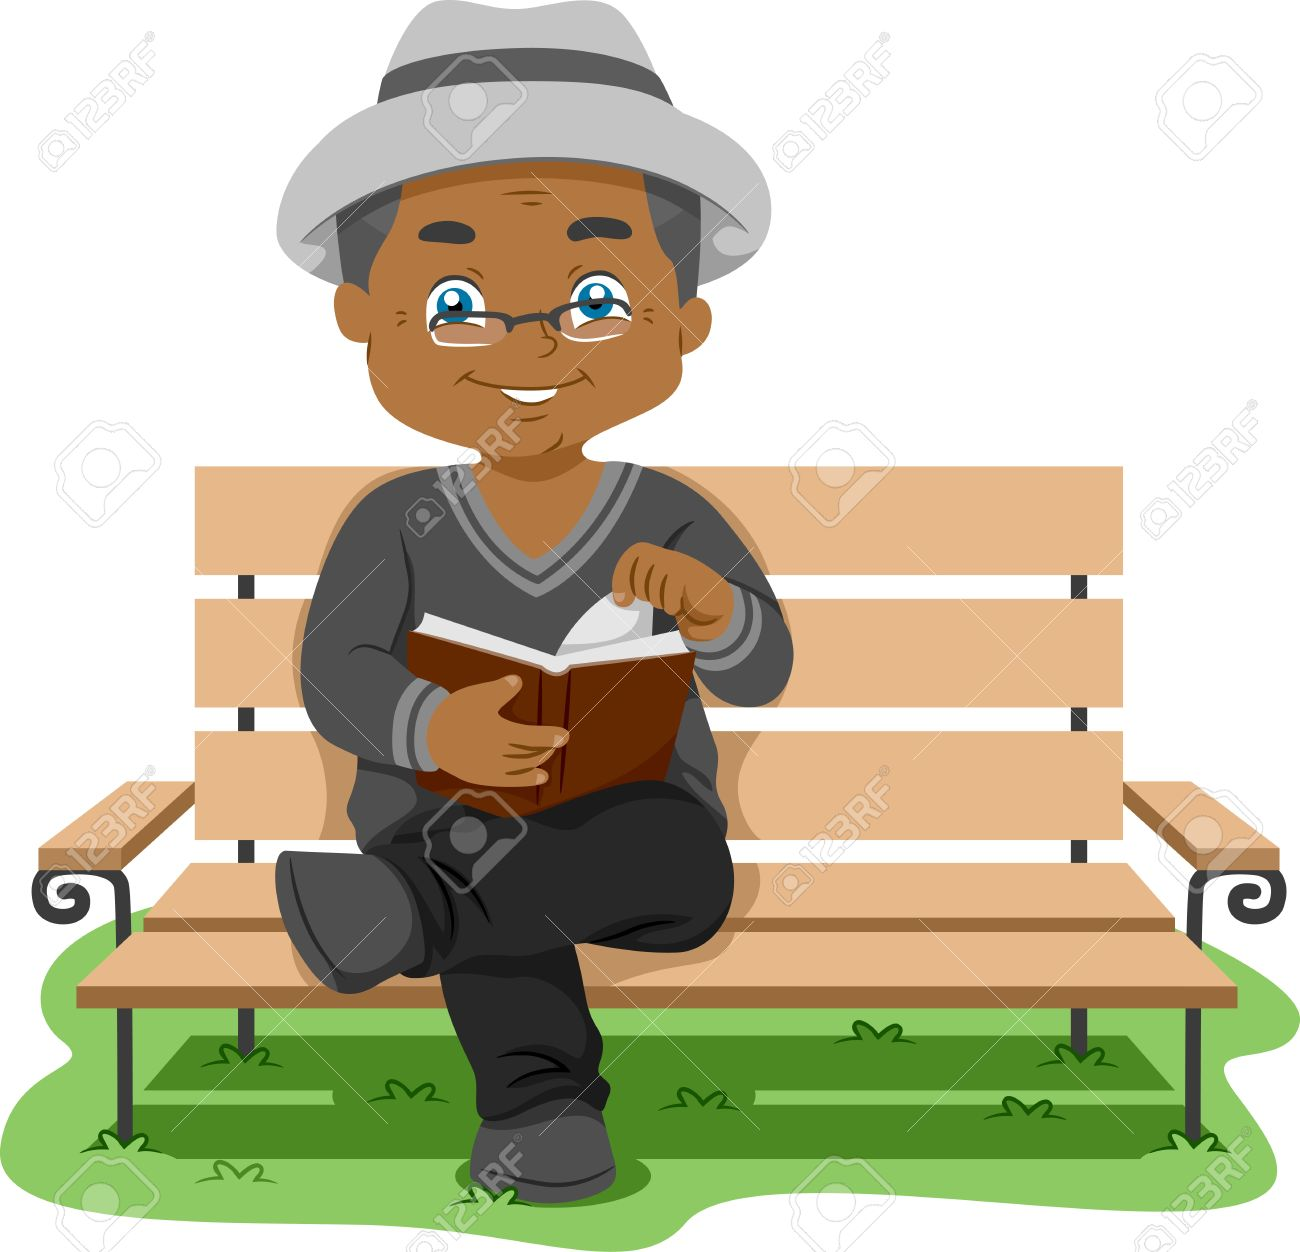 Illustration Featuring an Elderly Man Reading a Book Stock Photo - 14493485